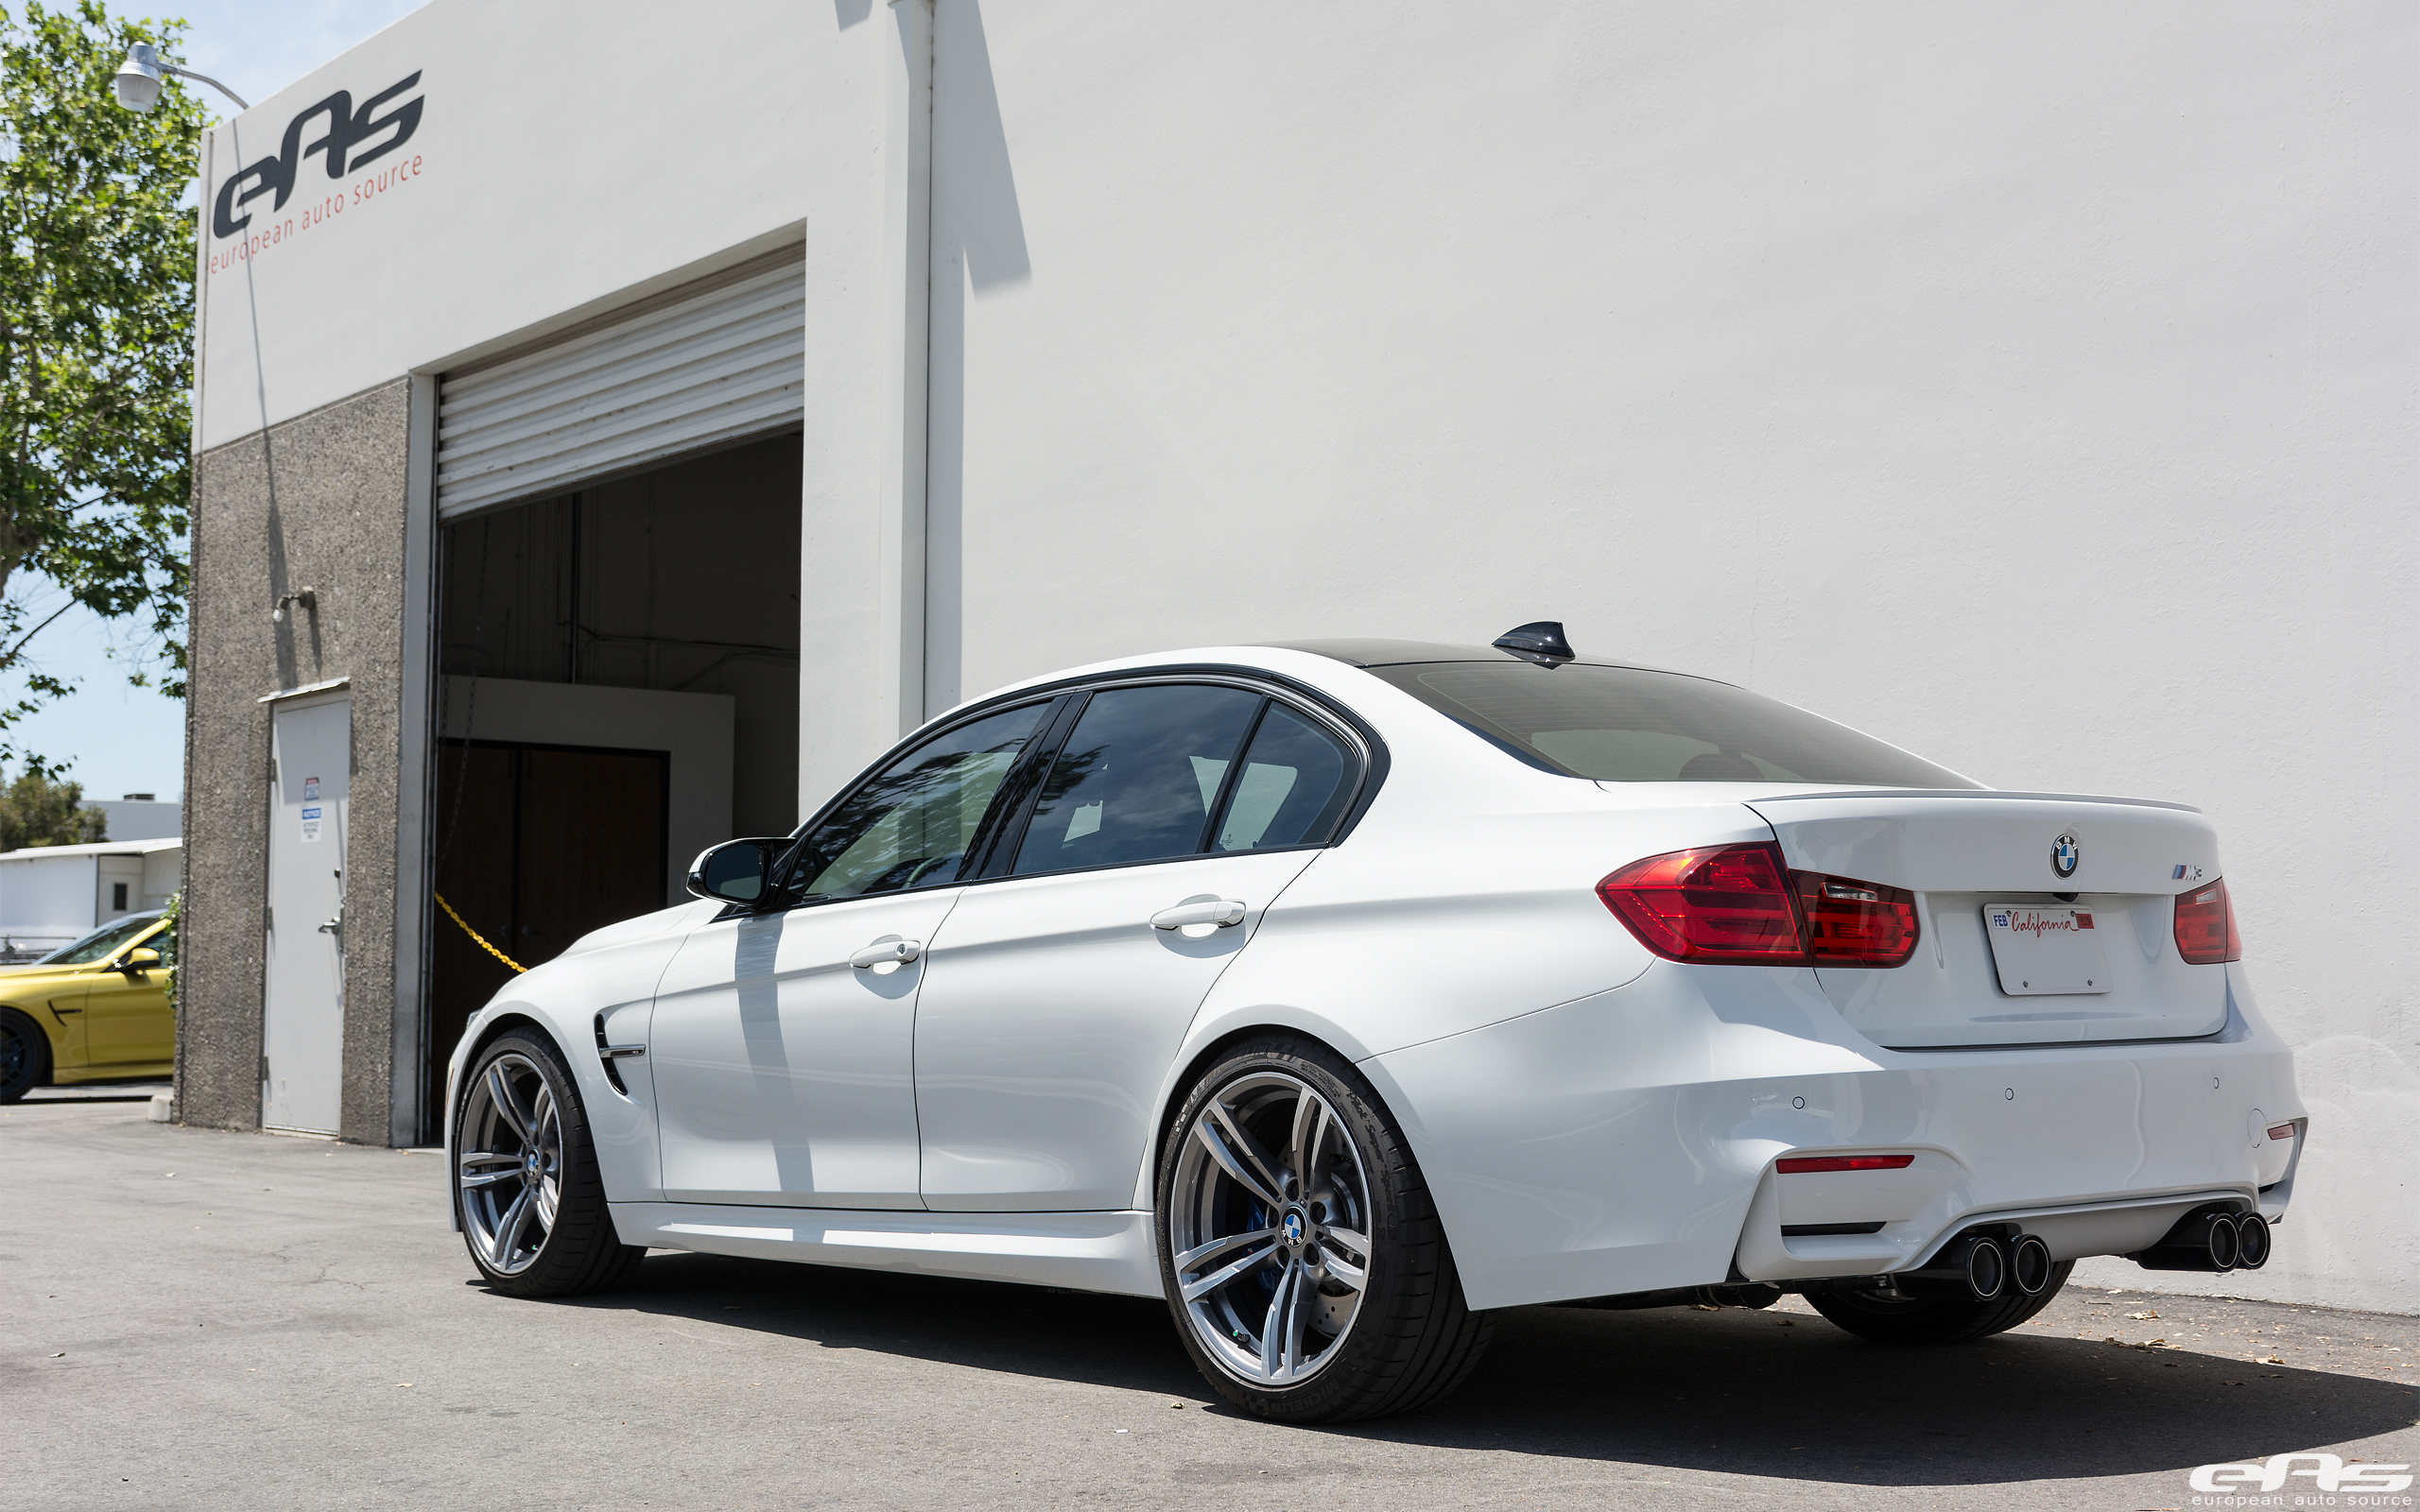 Alpine White BMW F80 M3 With A Remus Exhaust System Installed 16